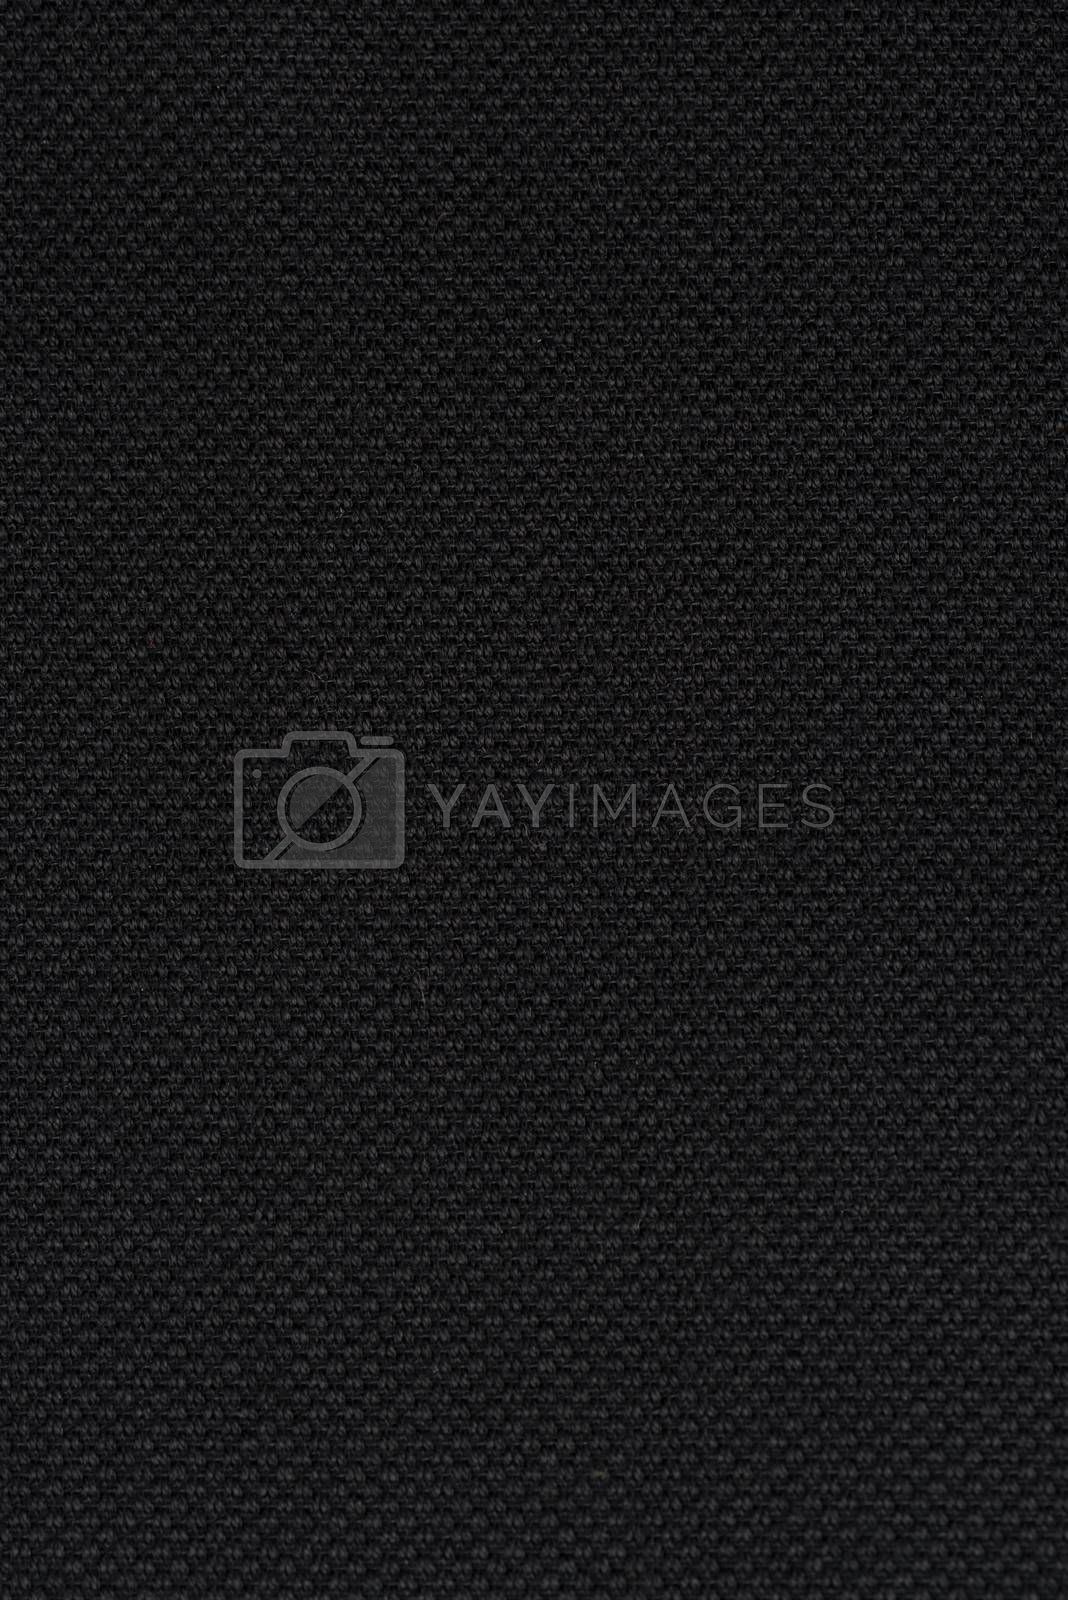 Royalty free image of Black fabric by homydesign